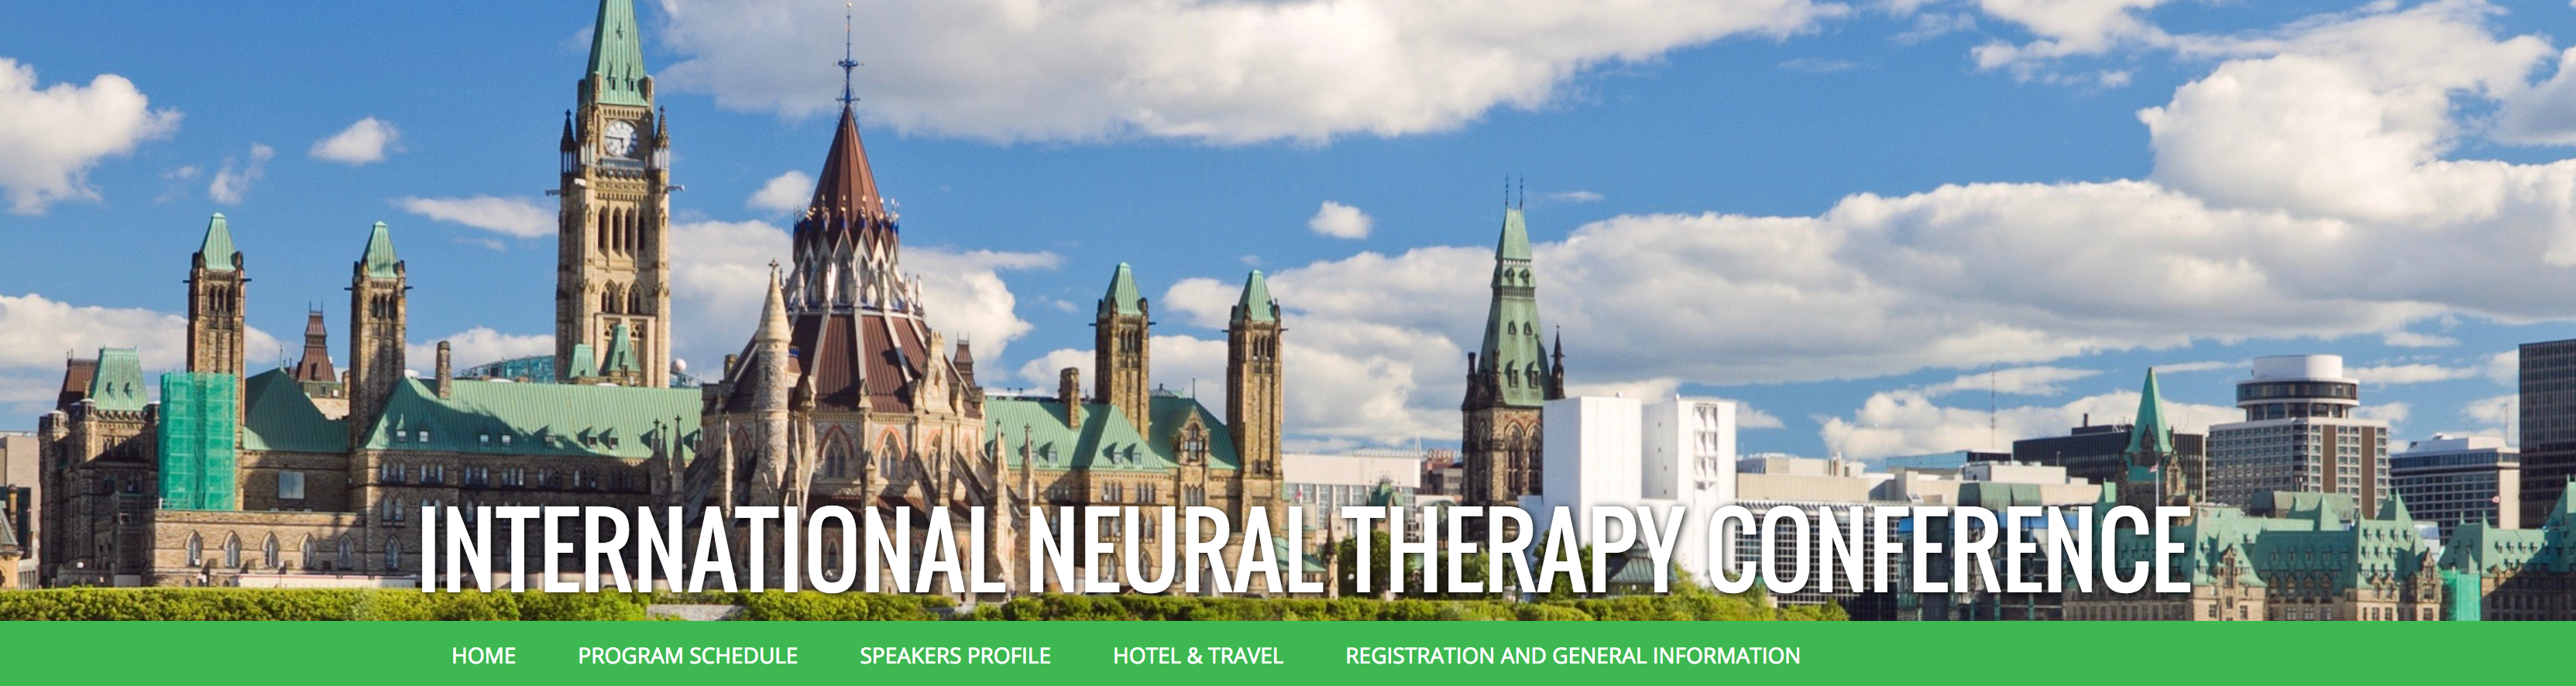 CANADA INTERNATIONAL NEURALTHERAPY